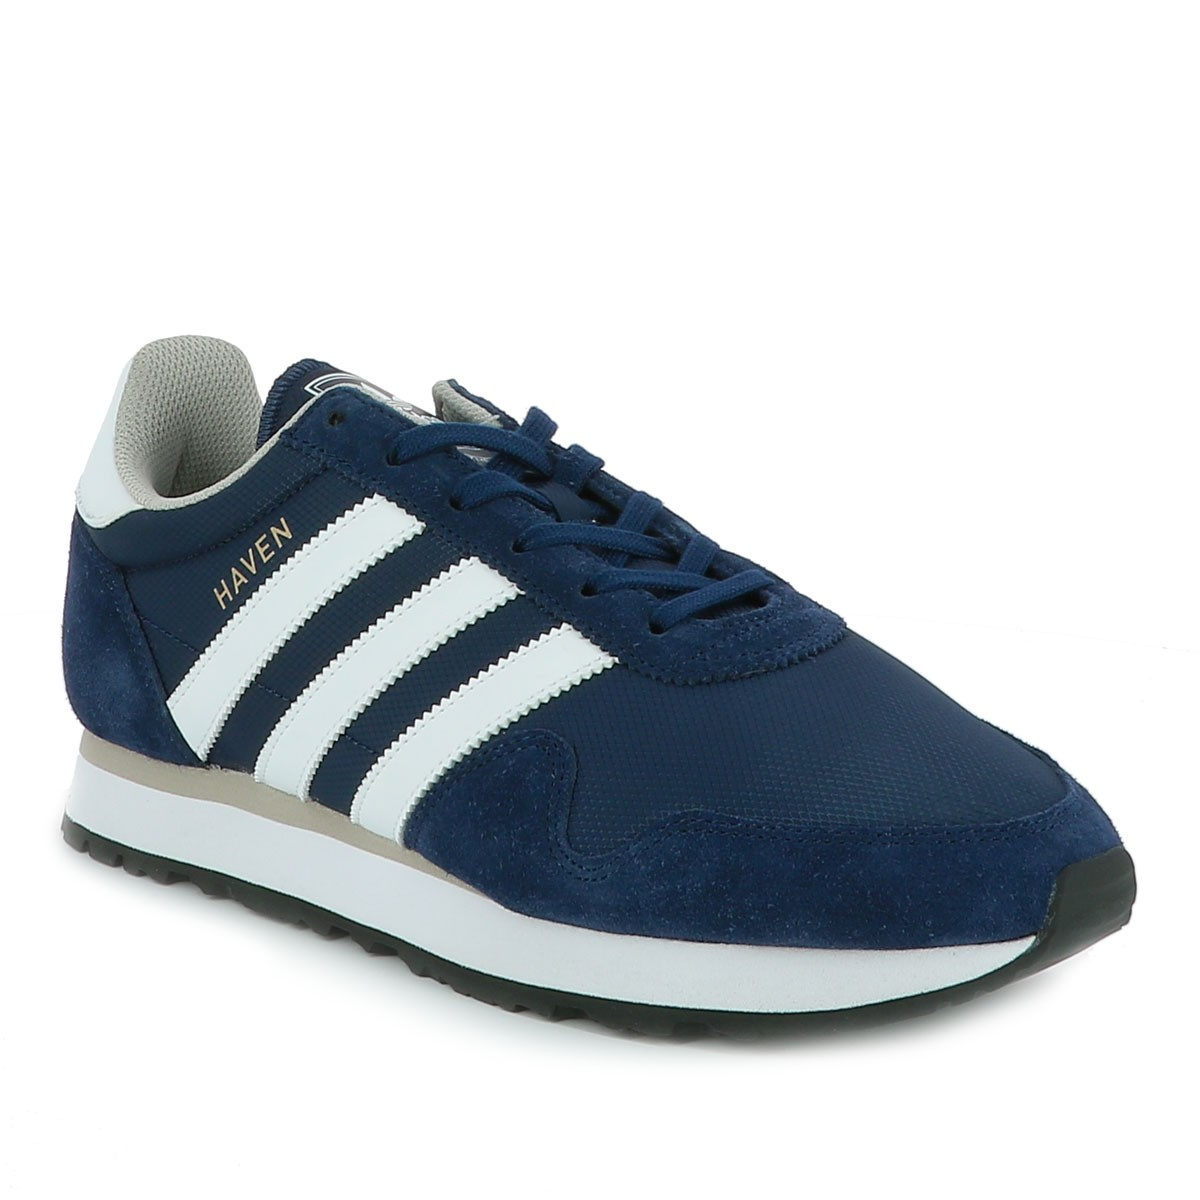 code promo 229ca 906c9 ADIDAS ORIGINALS Baskets Haven homme bleu